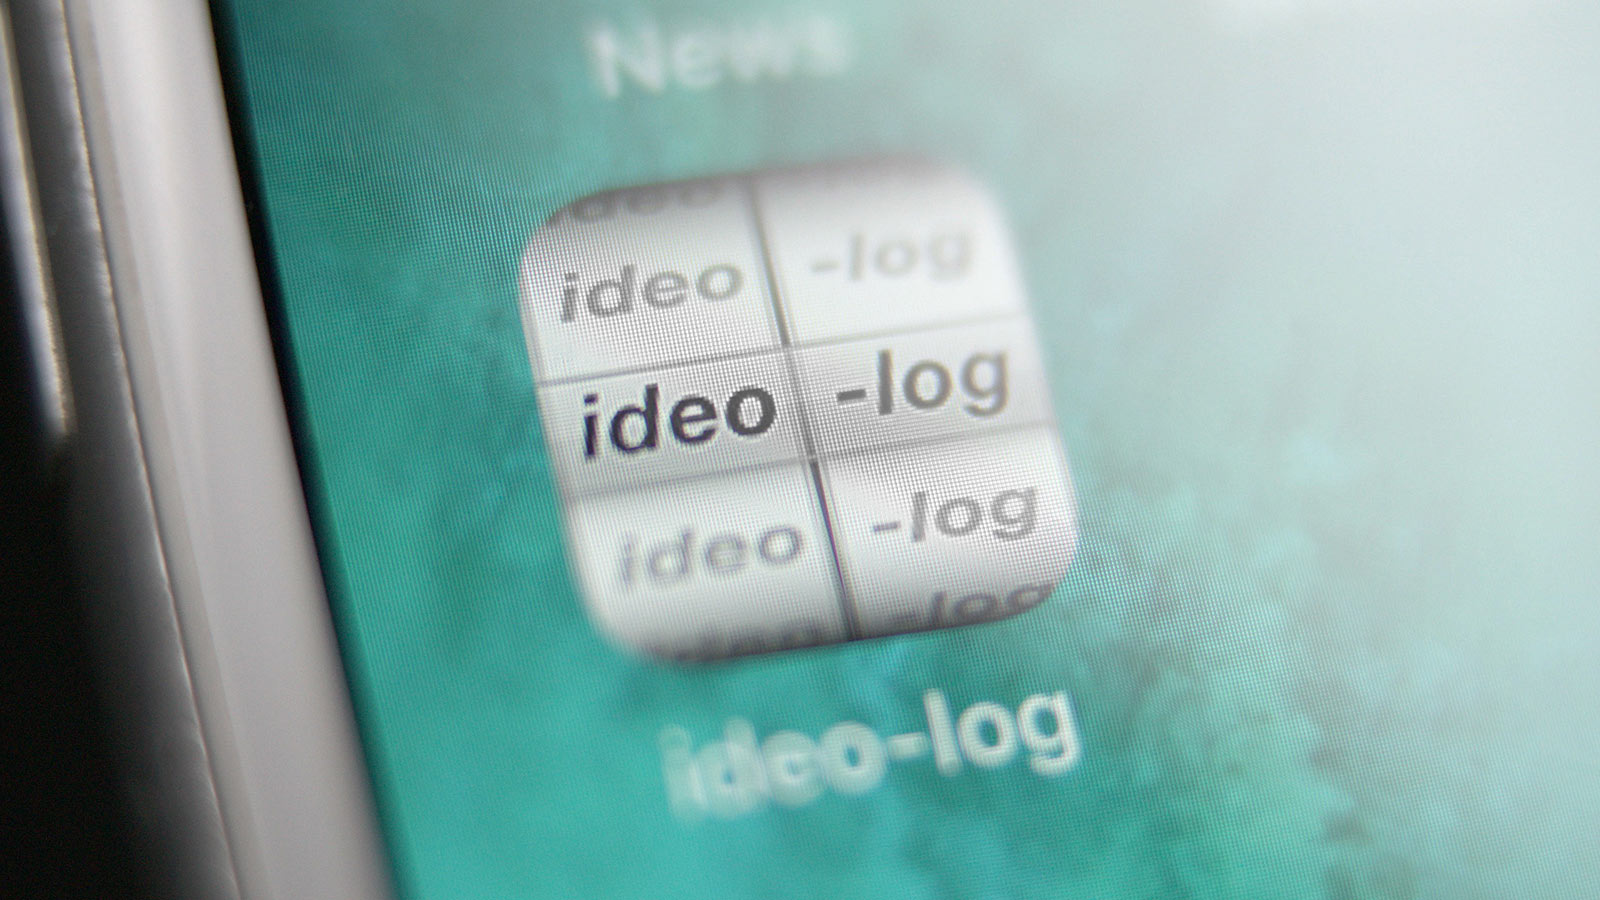 The 'ideo-log' Project